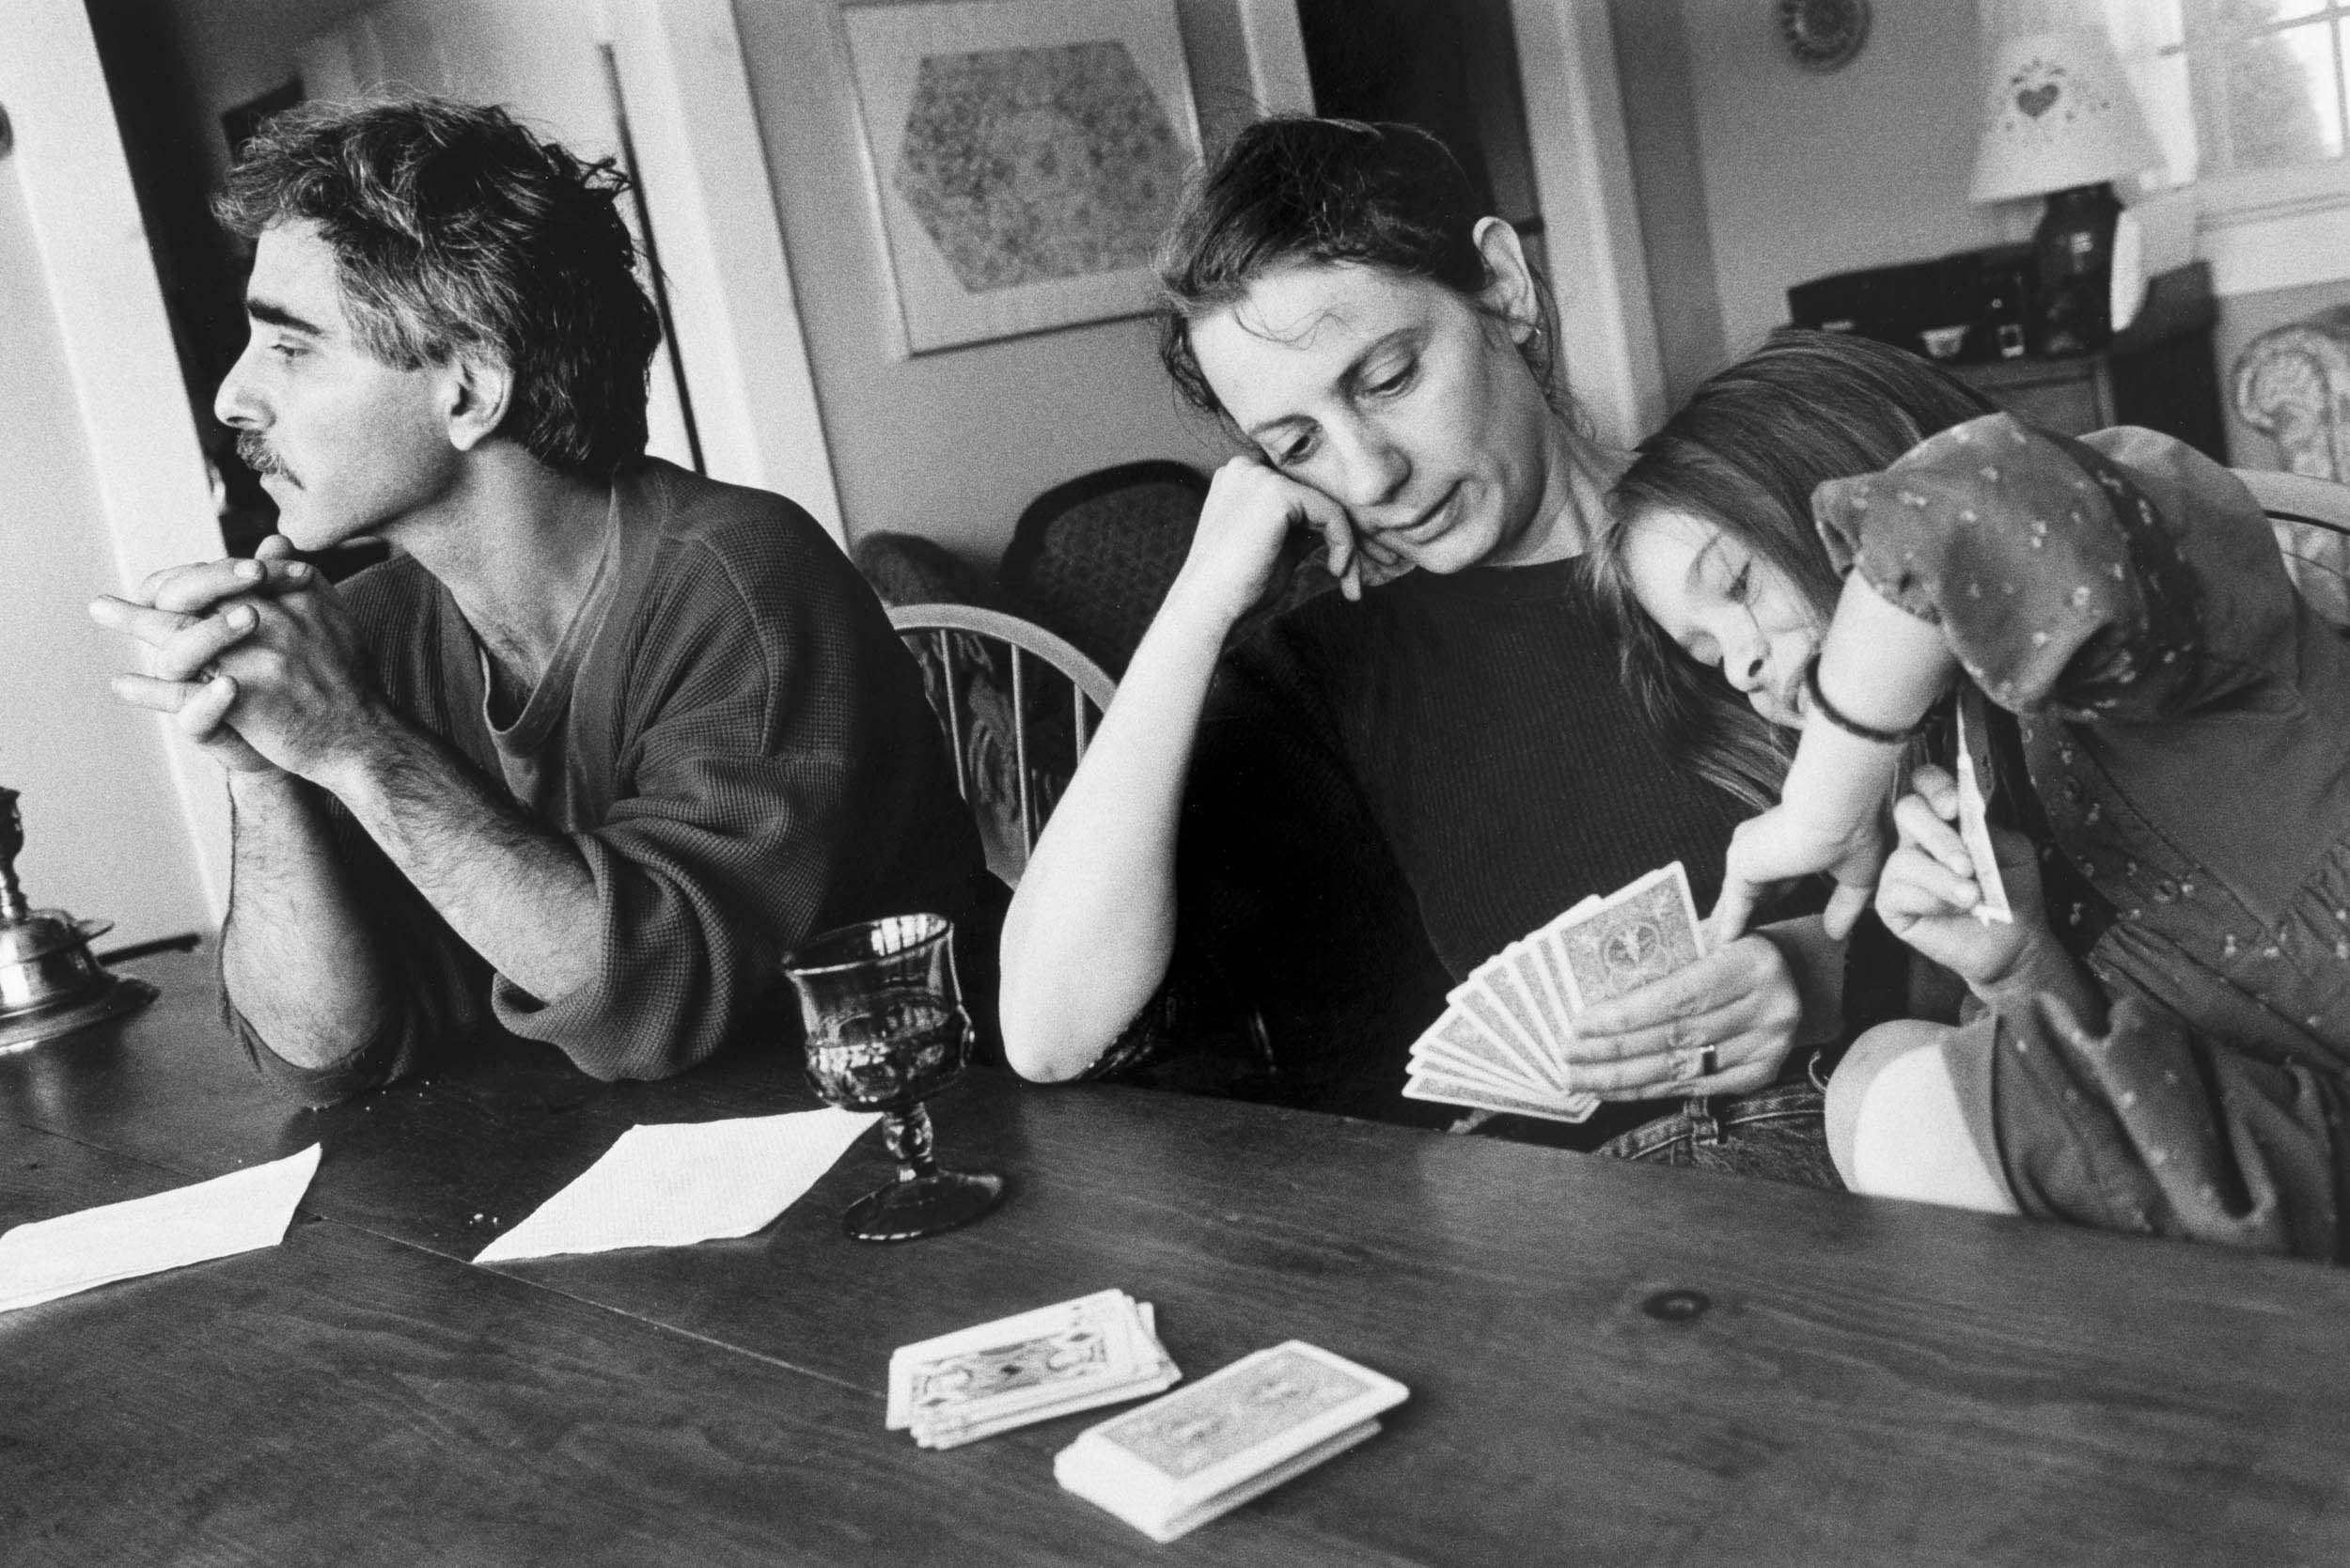 Wallkill, New York—Mark and Sydney with Eve - 1991, © Geoffrey Biddle